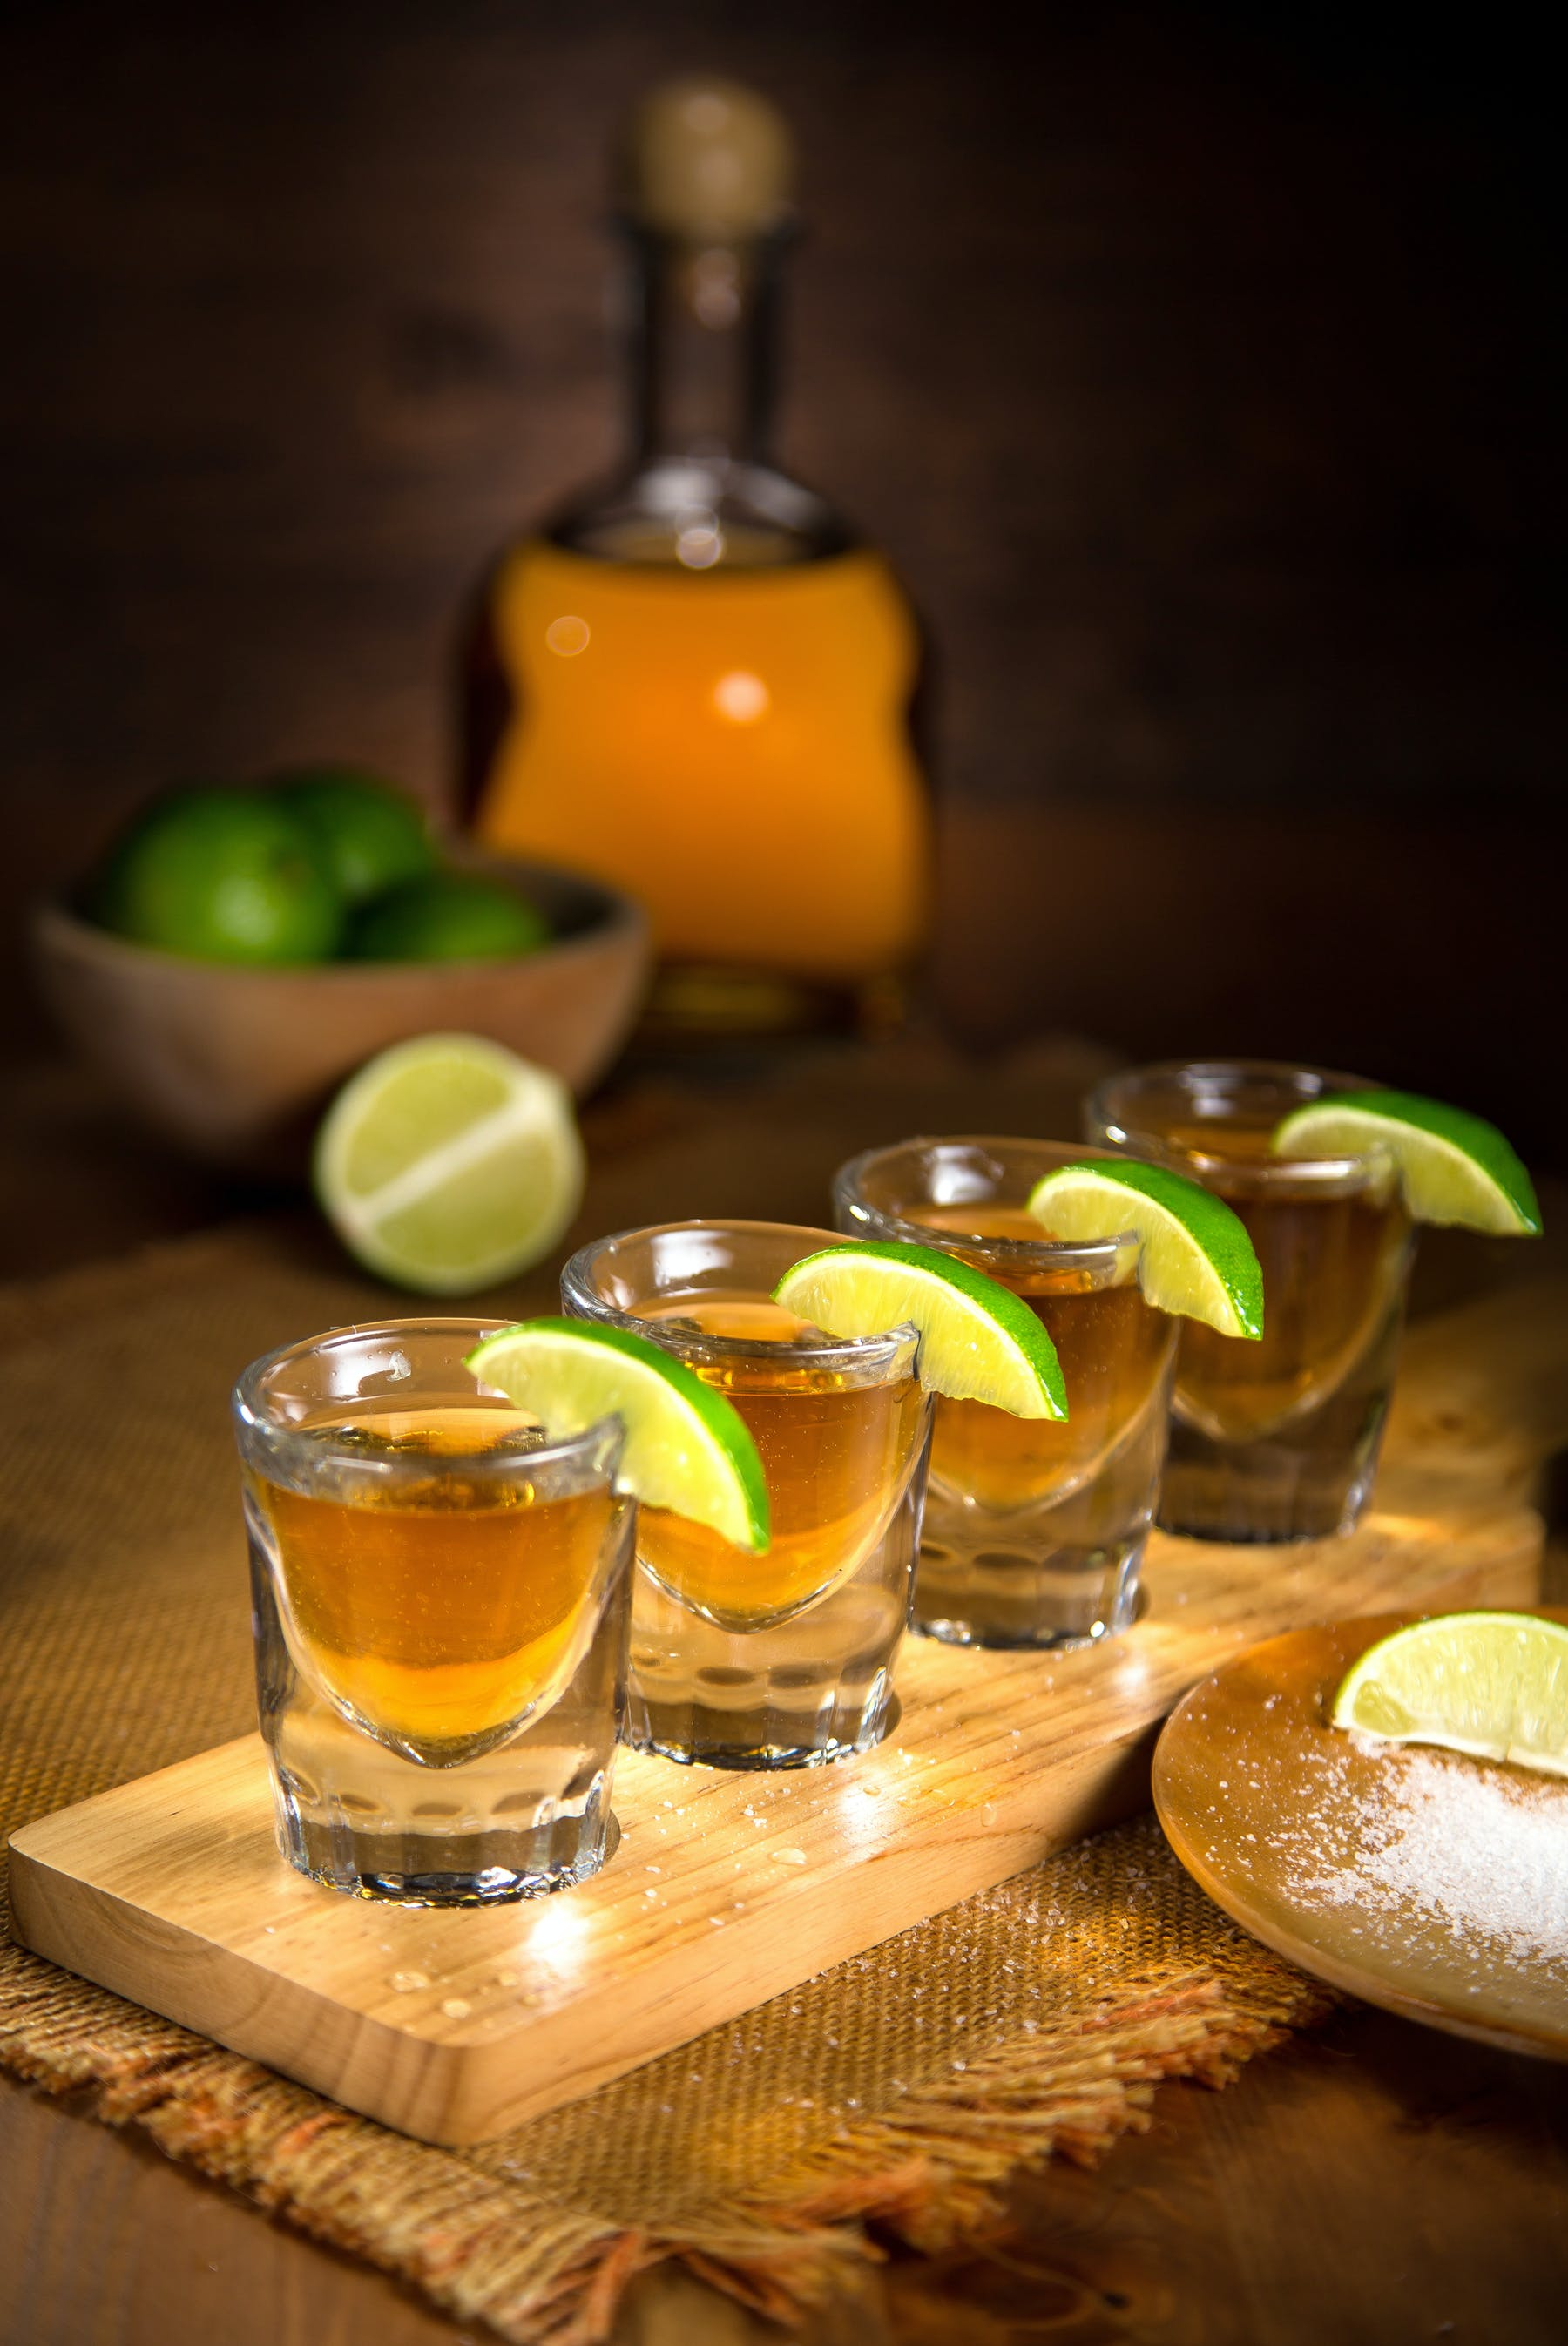 shots of tequila lined up sitting on a wooden cutting board